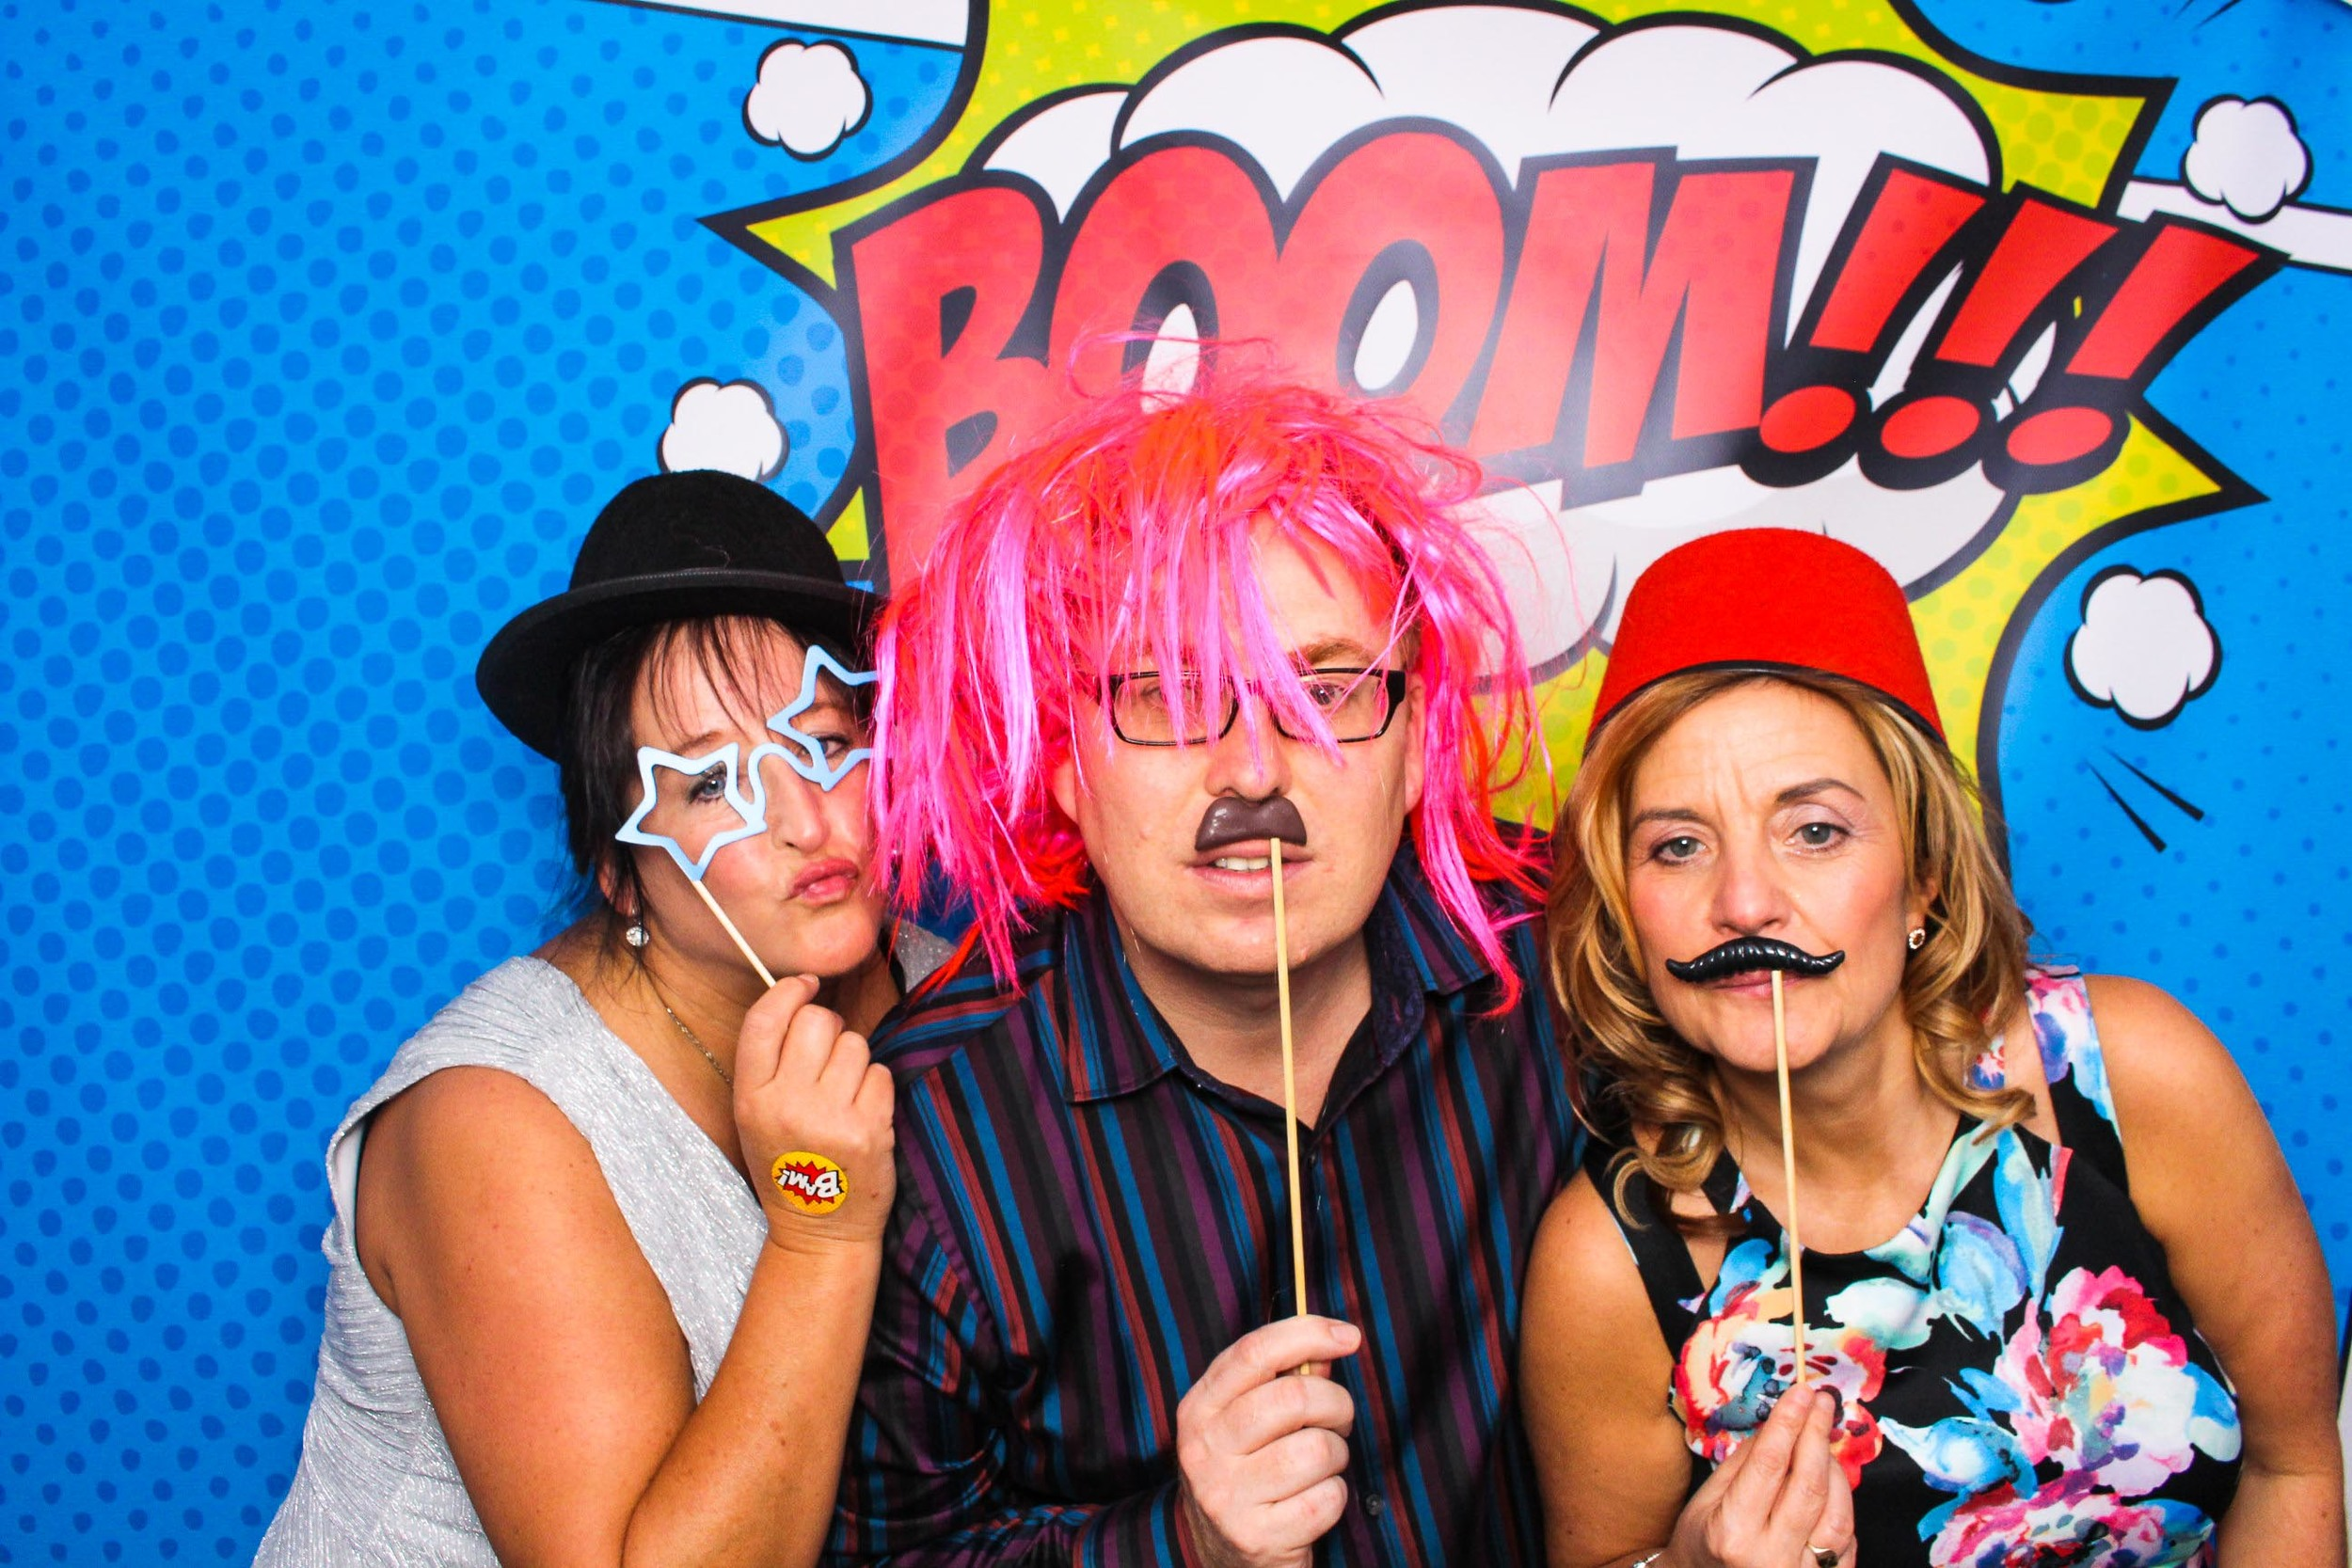 Fotoauto Photo Booth Hire - Shop Direct-170.jpg